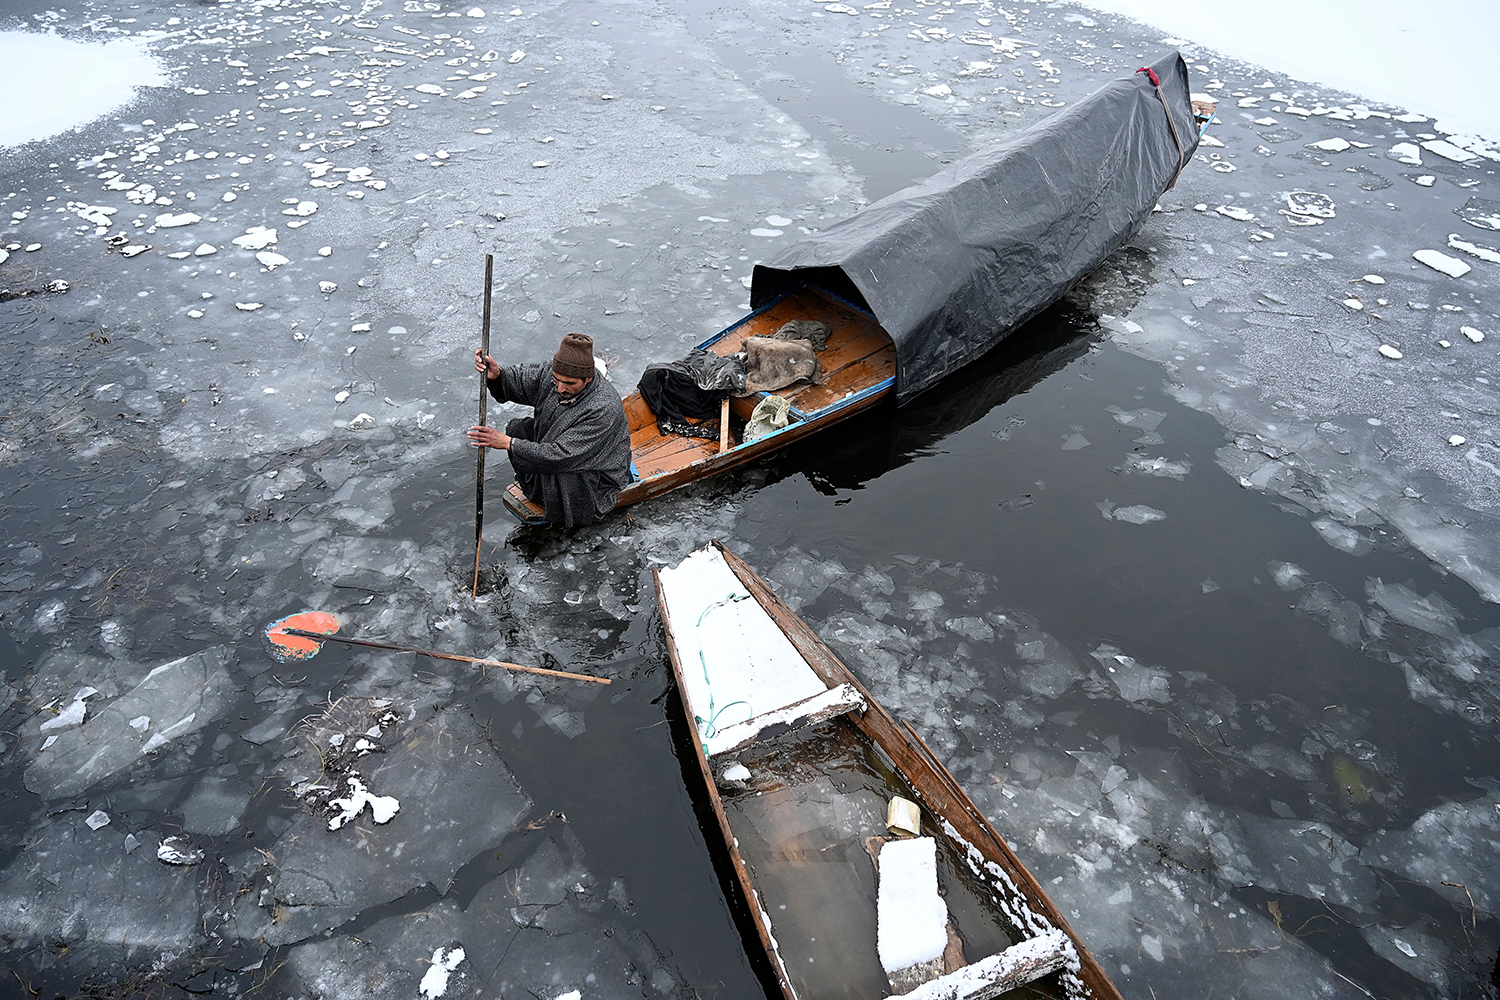 A man rows a boat near a frozen portion of Dal Lake in Srinagar—in the territory of Jammu and Kashmir—on Feb. 1. TAUSEEF MUSTAFA/AFP via Getty Images